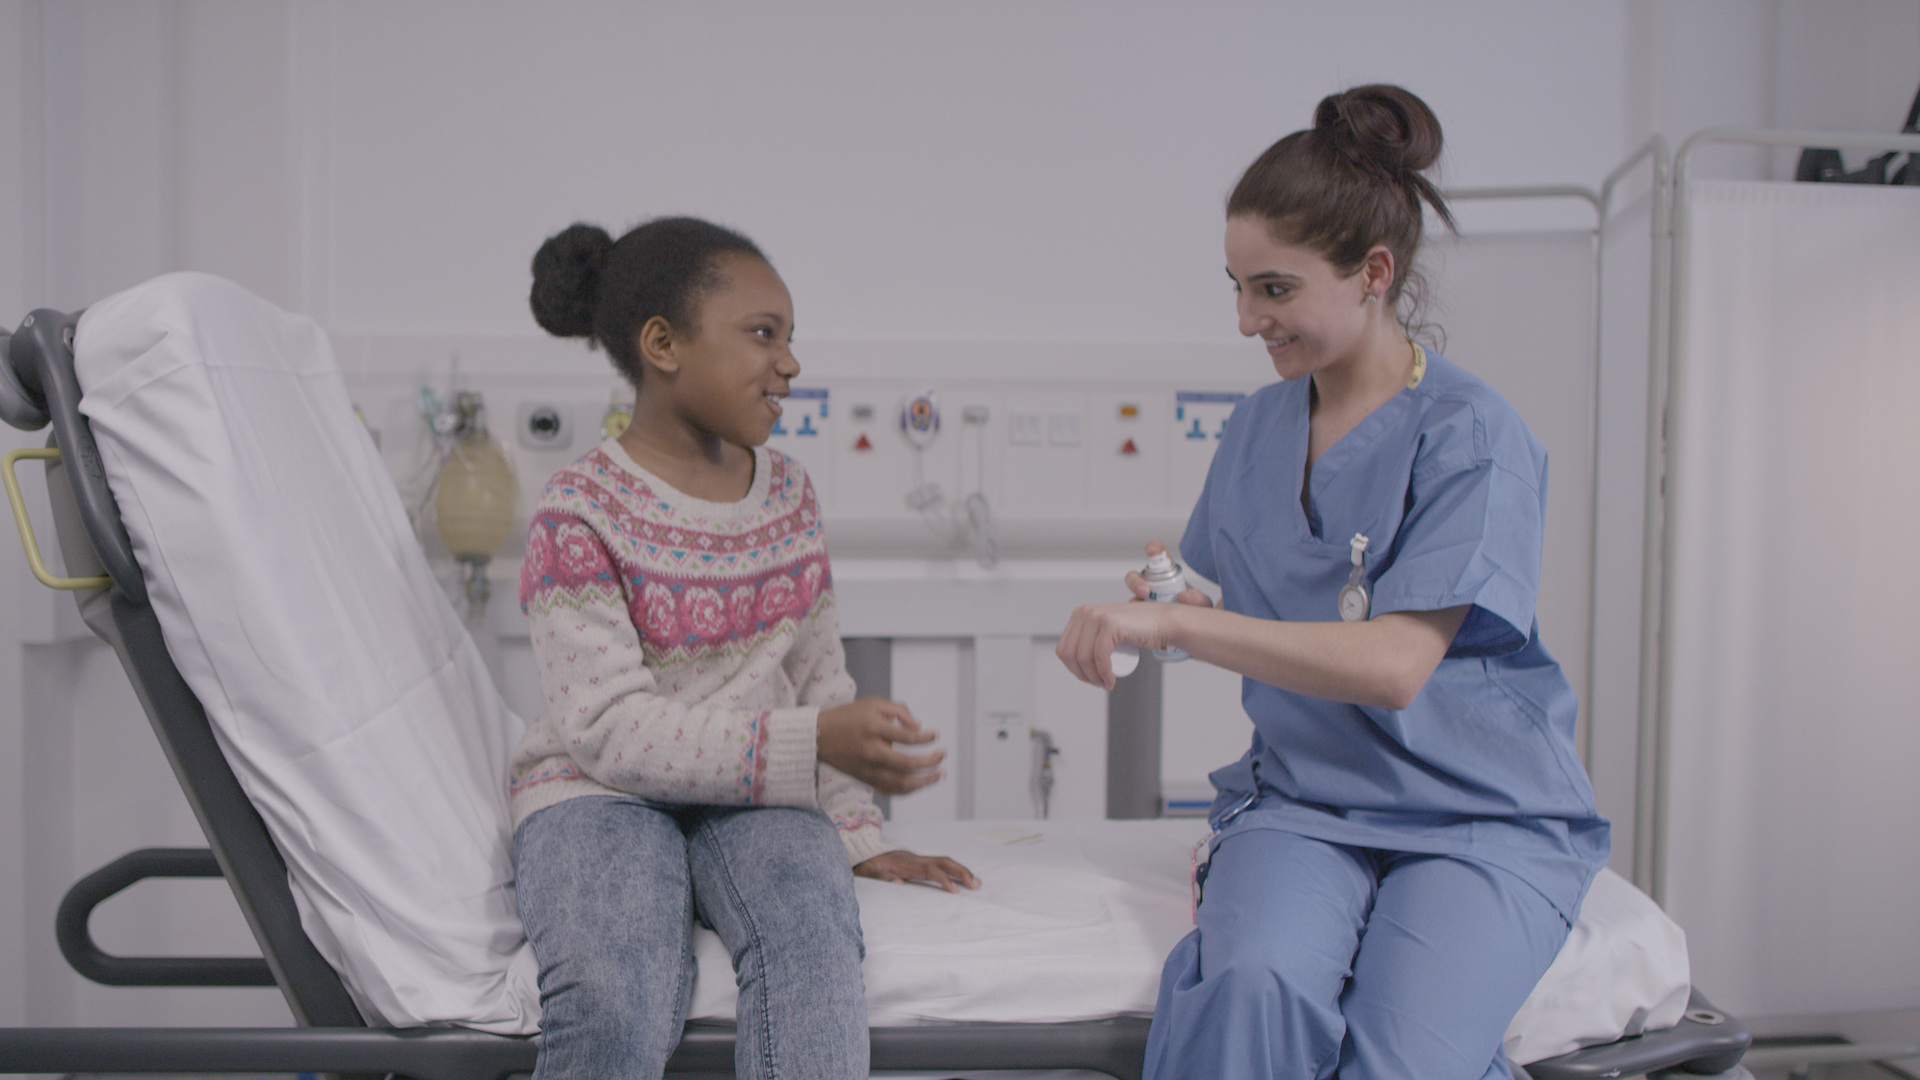 CYP and health care professional having a conversation